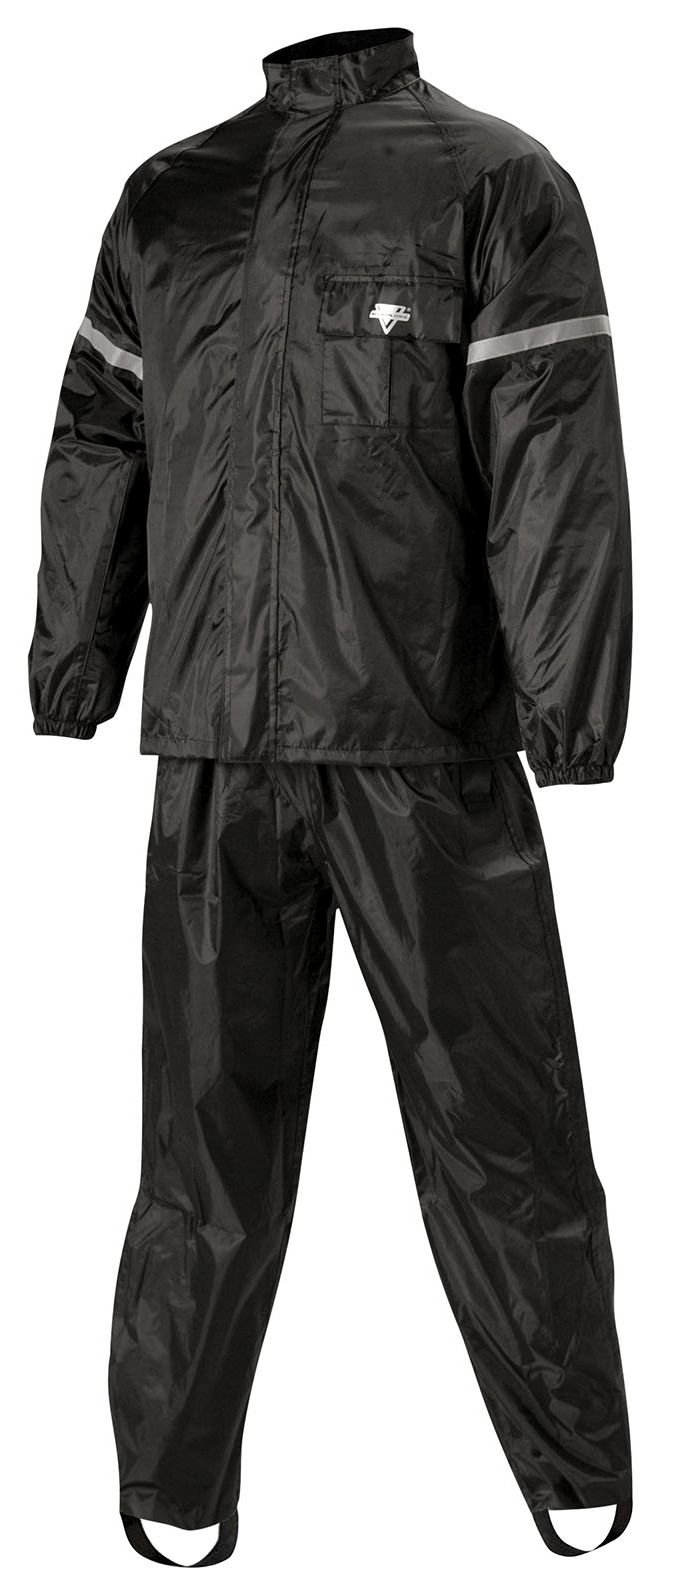 Nelson Rigg WeatherPro Rainsuit (Black, XX-Large), 2 Piece